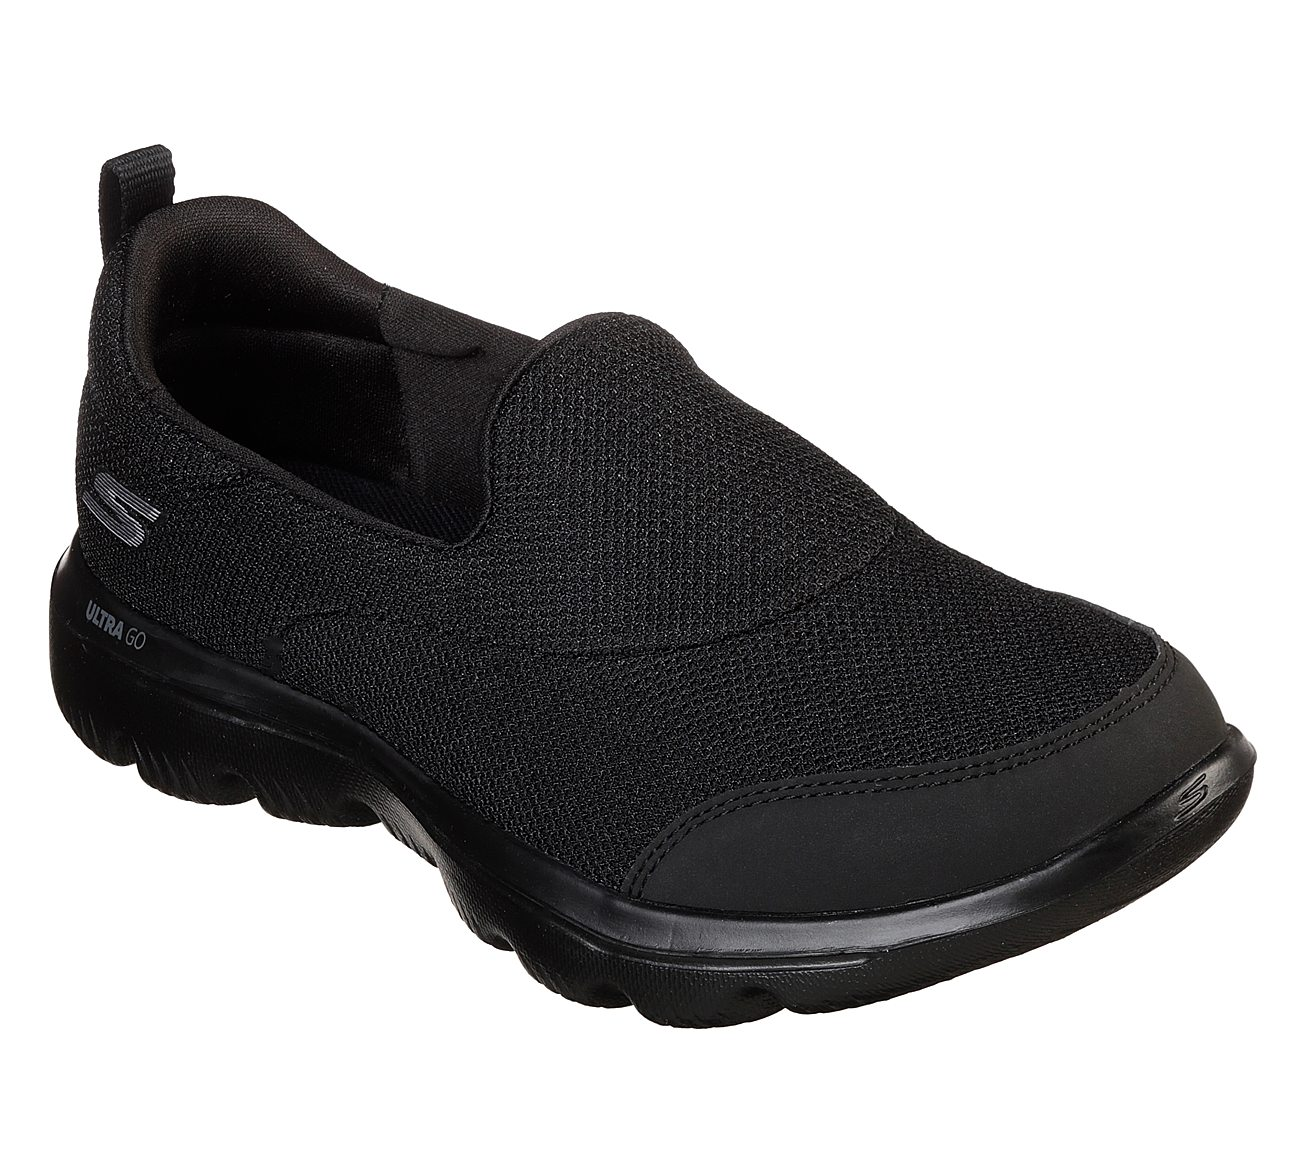 Skechers Women's Go Walk Evolution Ultra Slip On Shoe